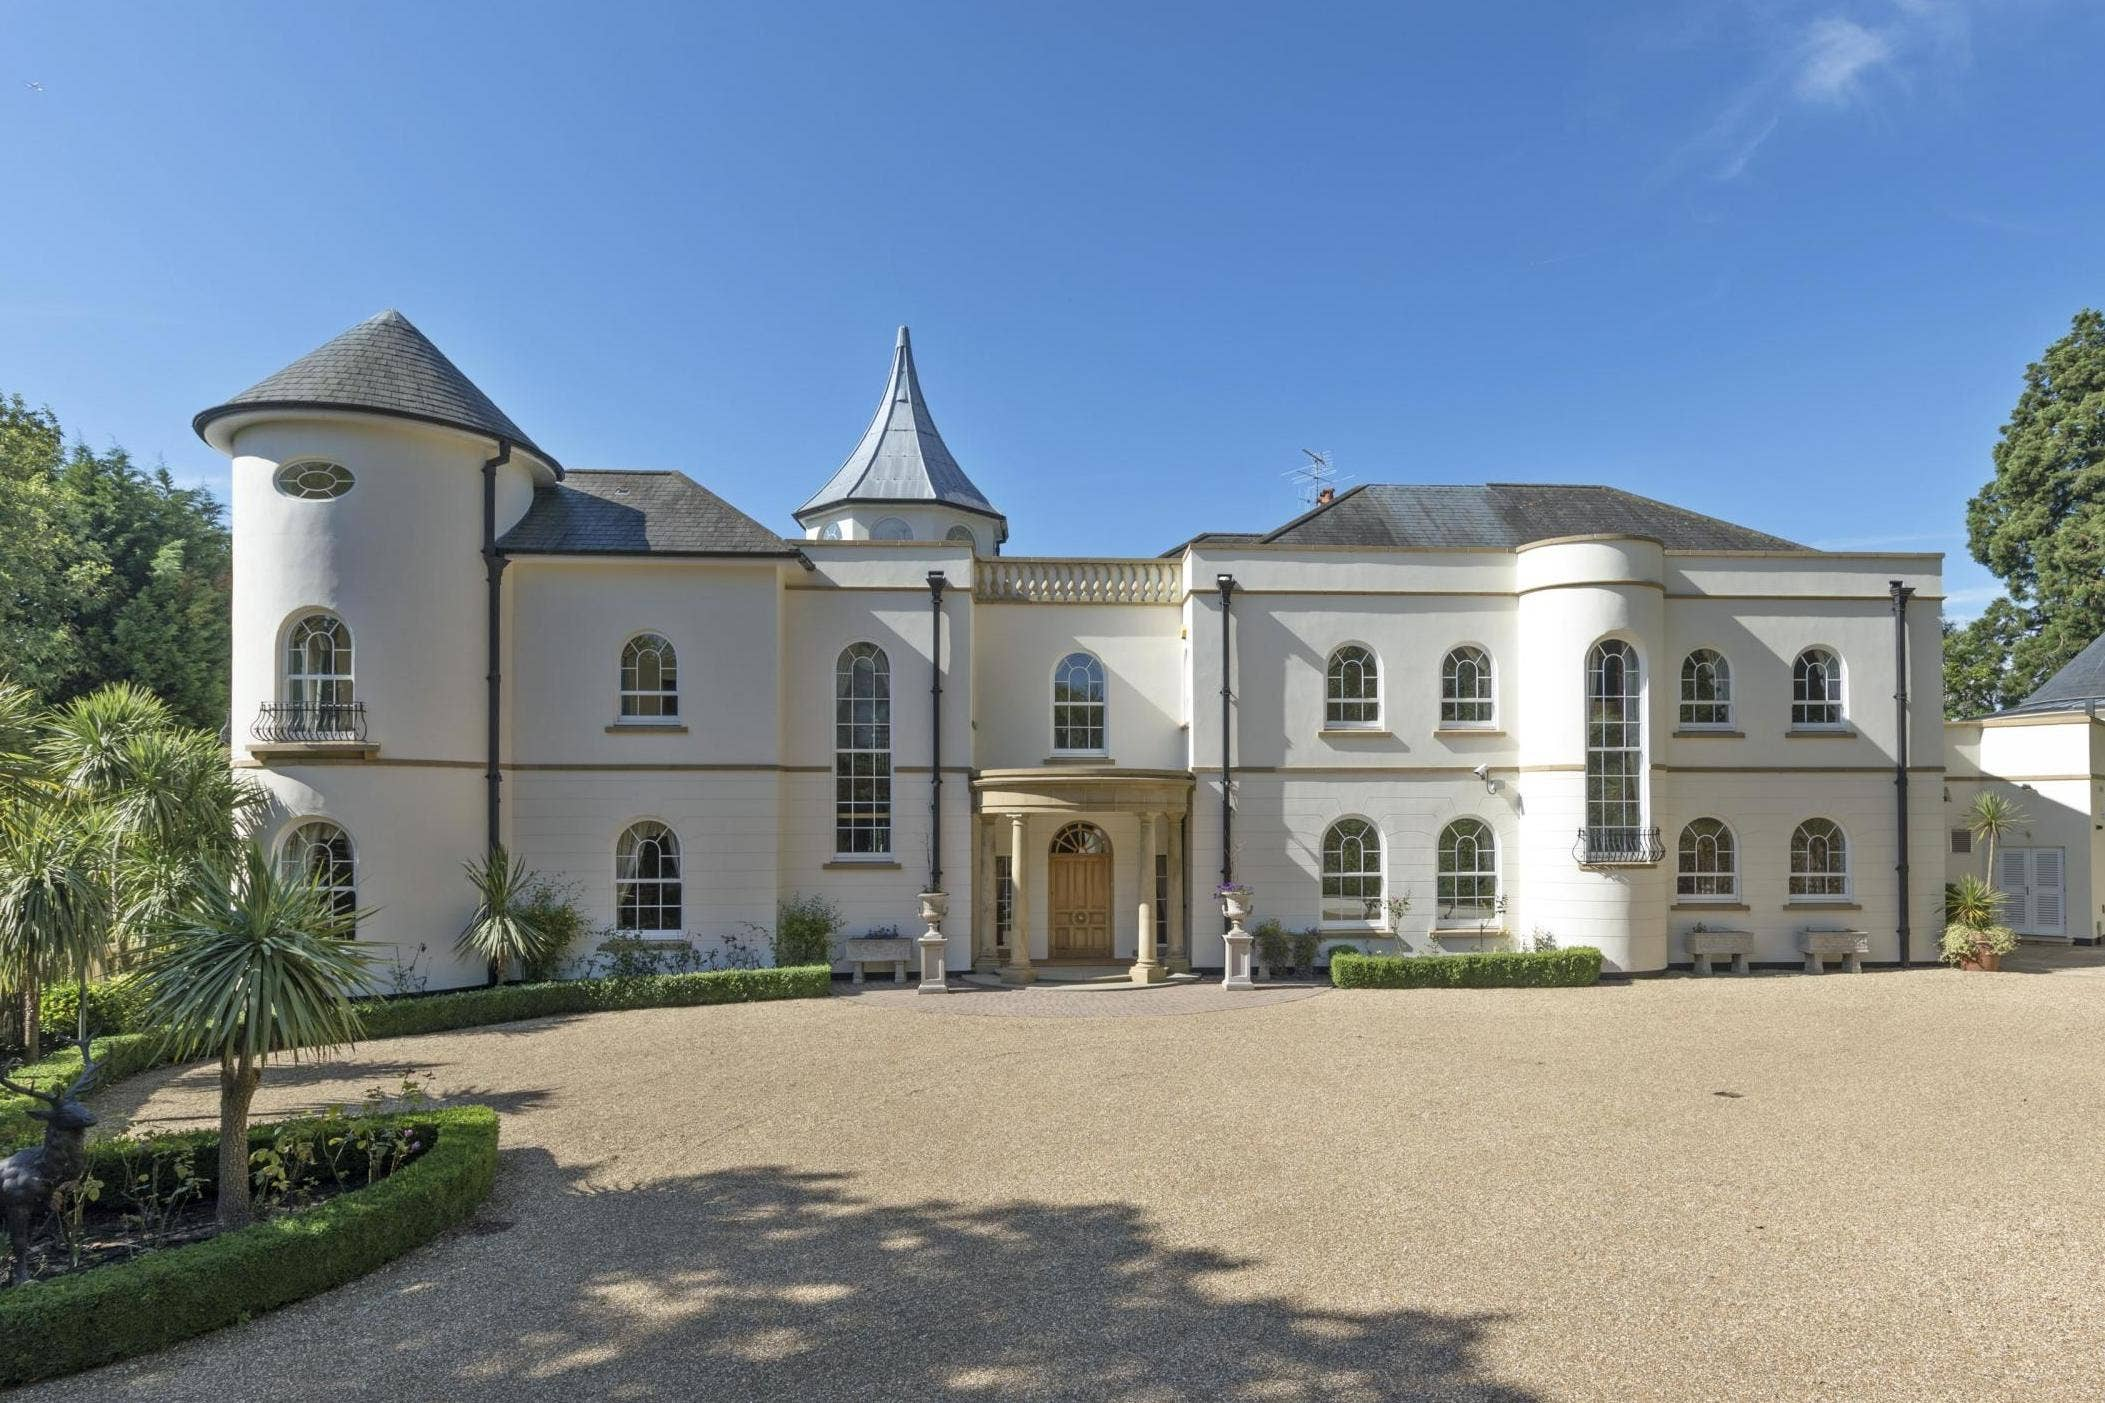 Most unusual buys of 2020:John Lennon's fairytale mansion and 6ft-wide skinny house among extraordinary London home sales this year